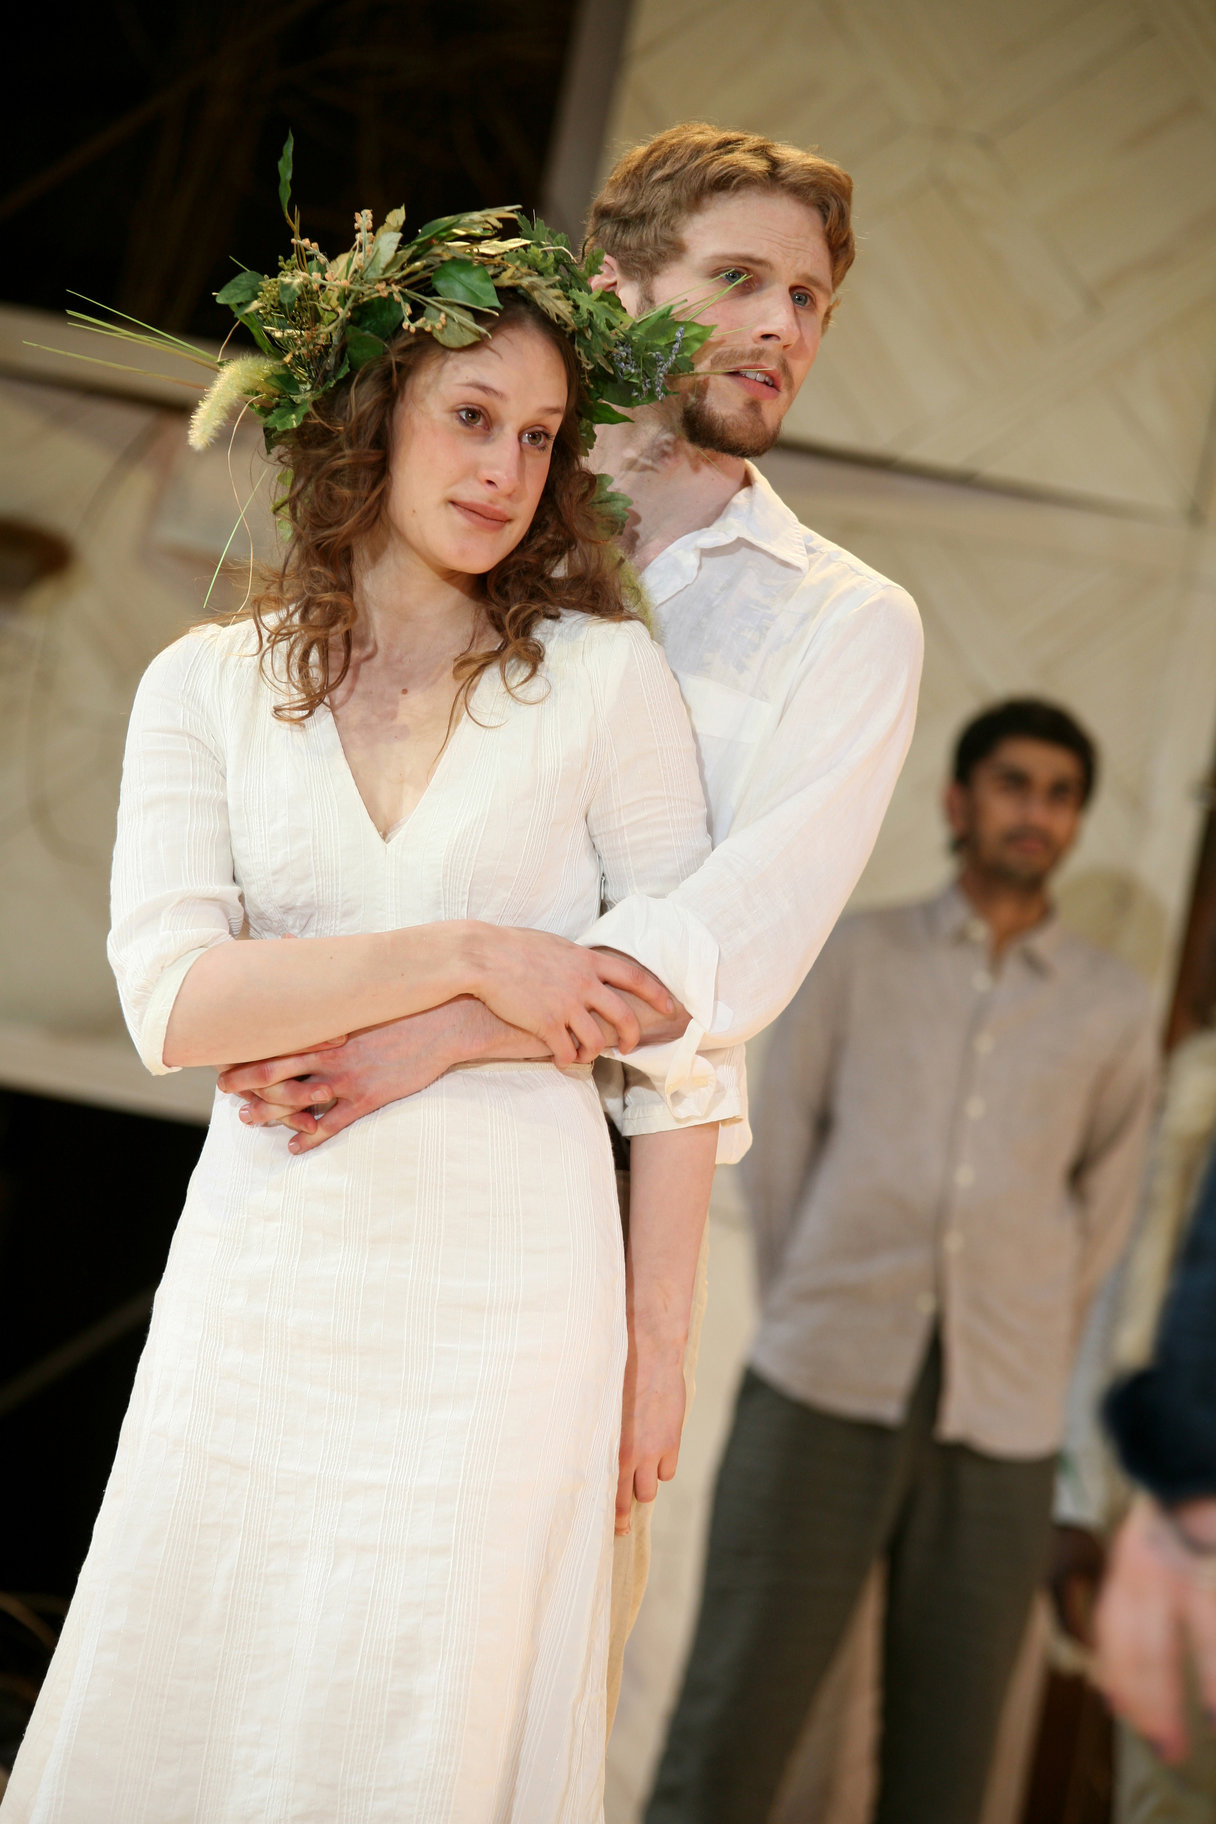 A man with his arms around a woman in white with a leafy garland.